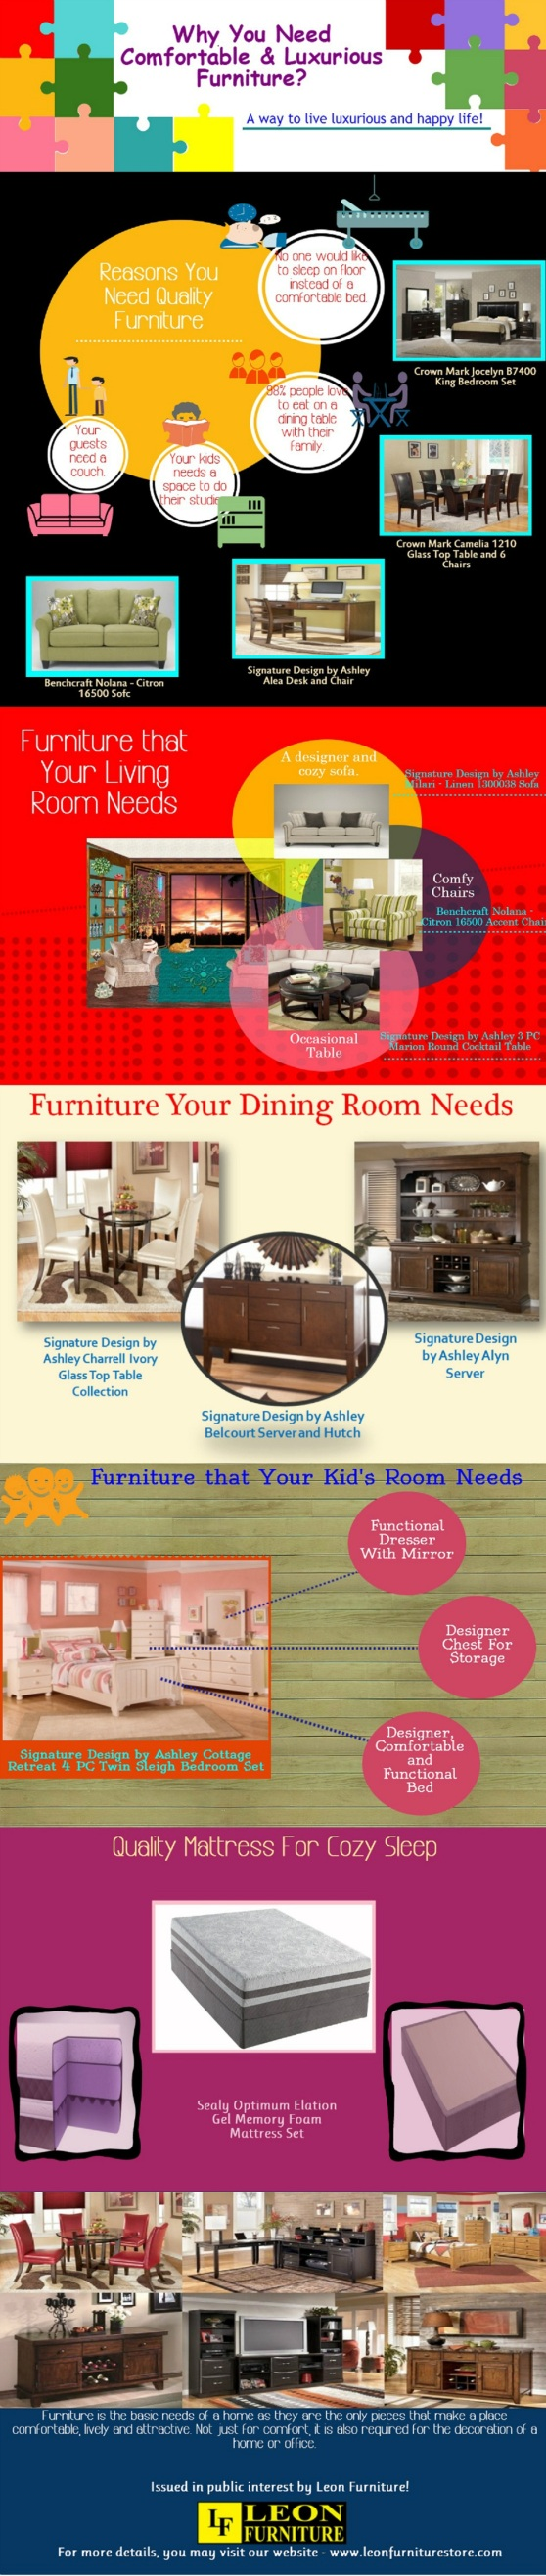 Why You Need Comfortable and Luxurious Furniture-